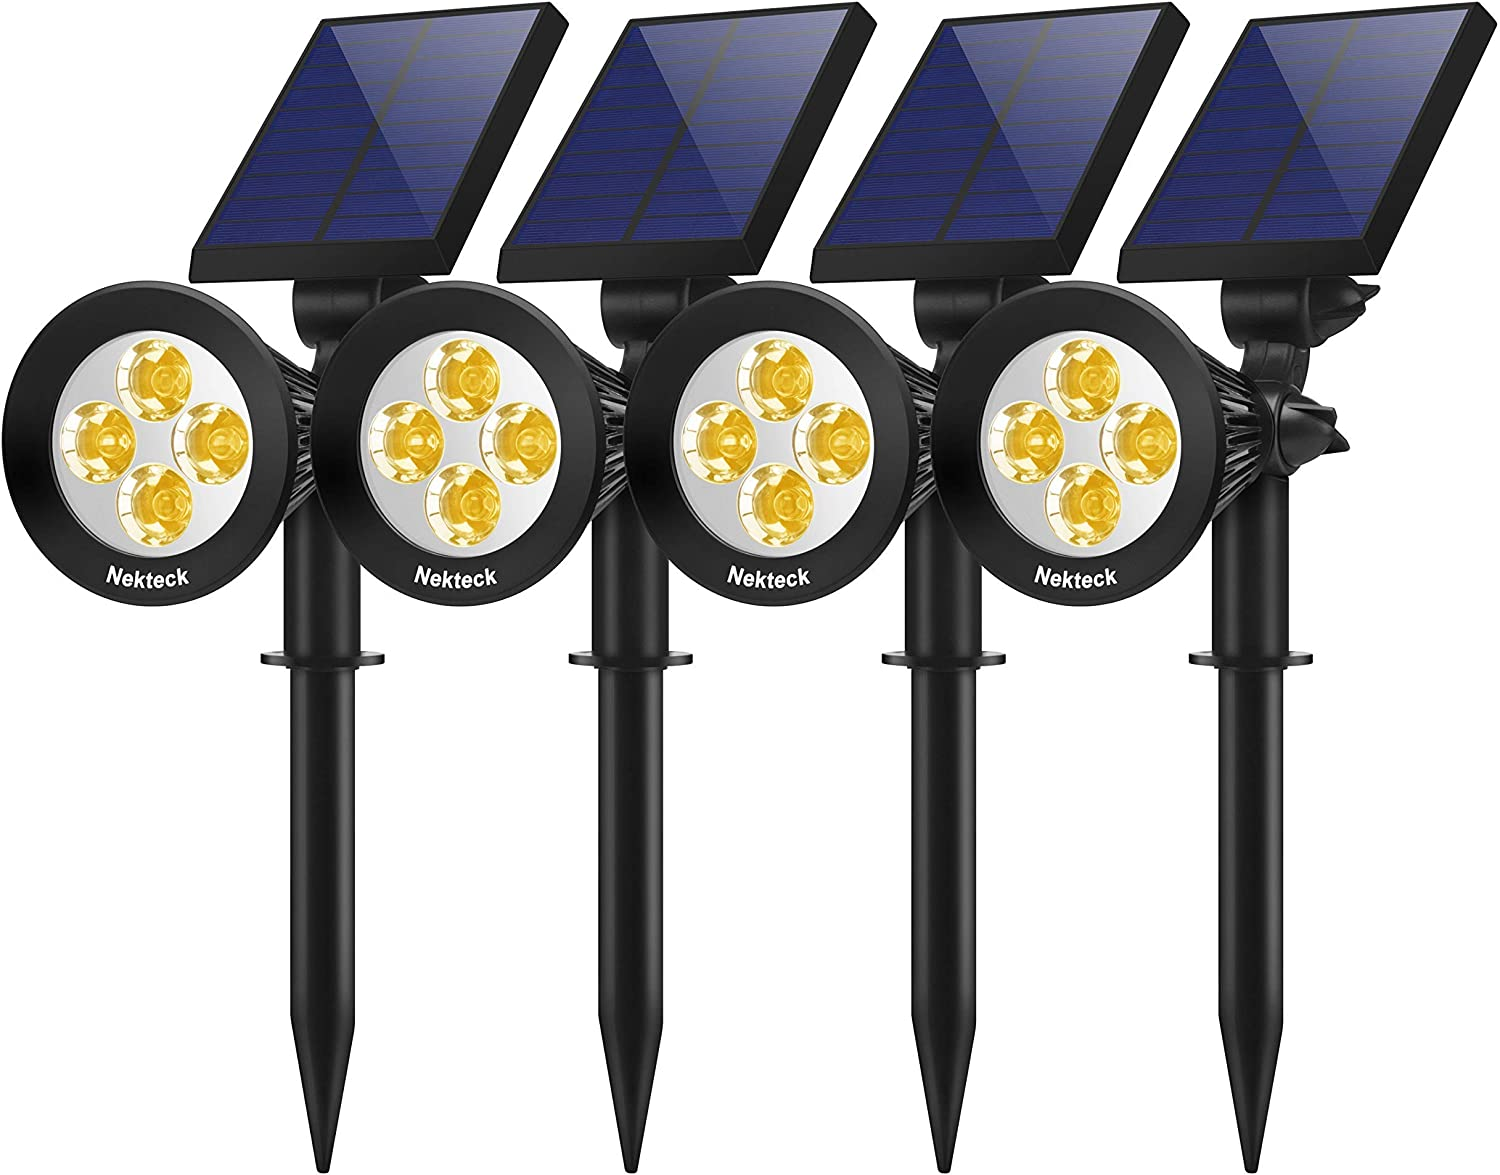 Nekteck Outdoor 2-in-1 Solar Spotlights Powered 4 LED Adjustable Wall Landscape Lighting, Bright and Dark Sensing Auto On/Off for Yard, Pathway, Walkway, Garden, Driveway, 4 Pack, Warm White